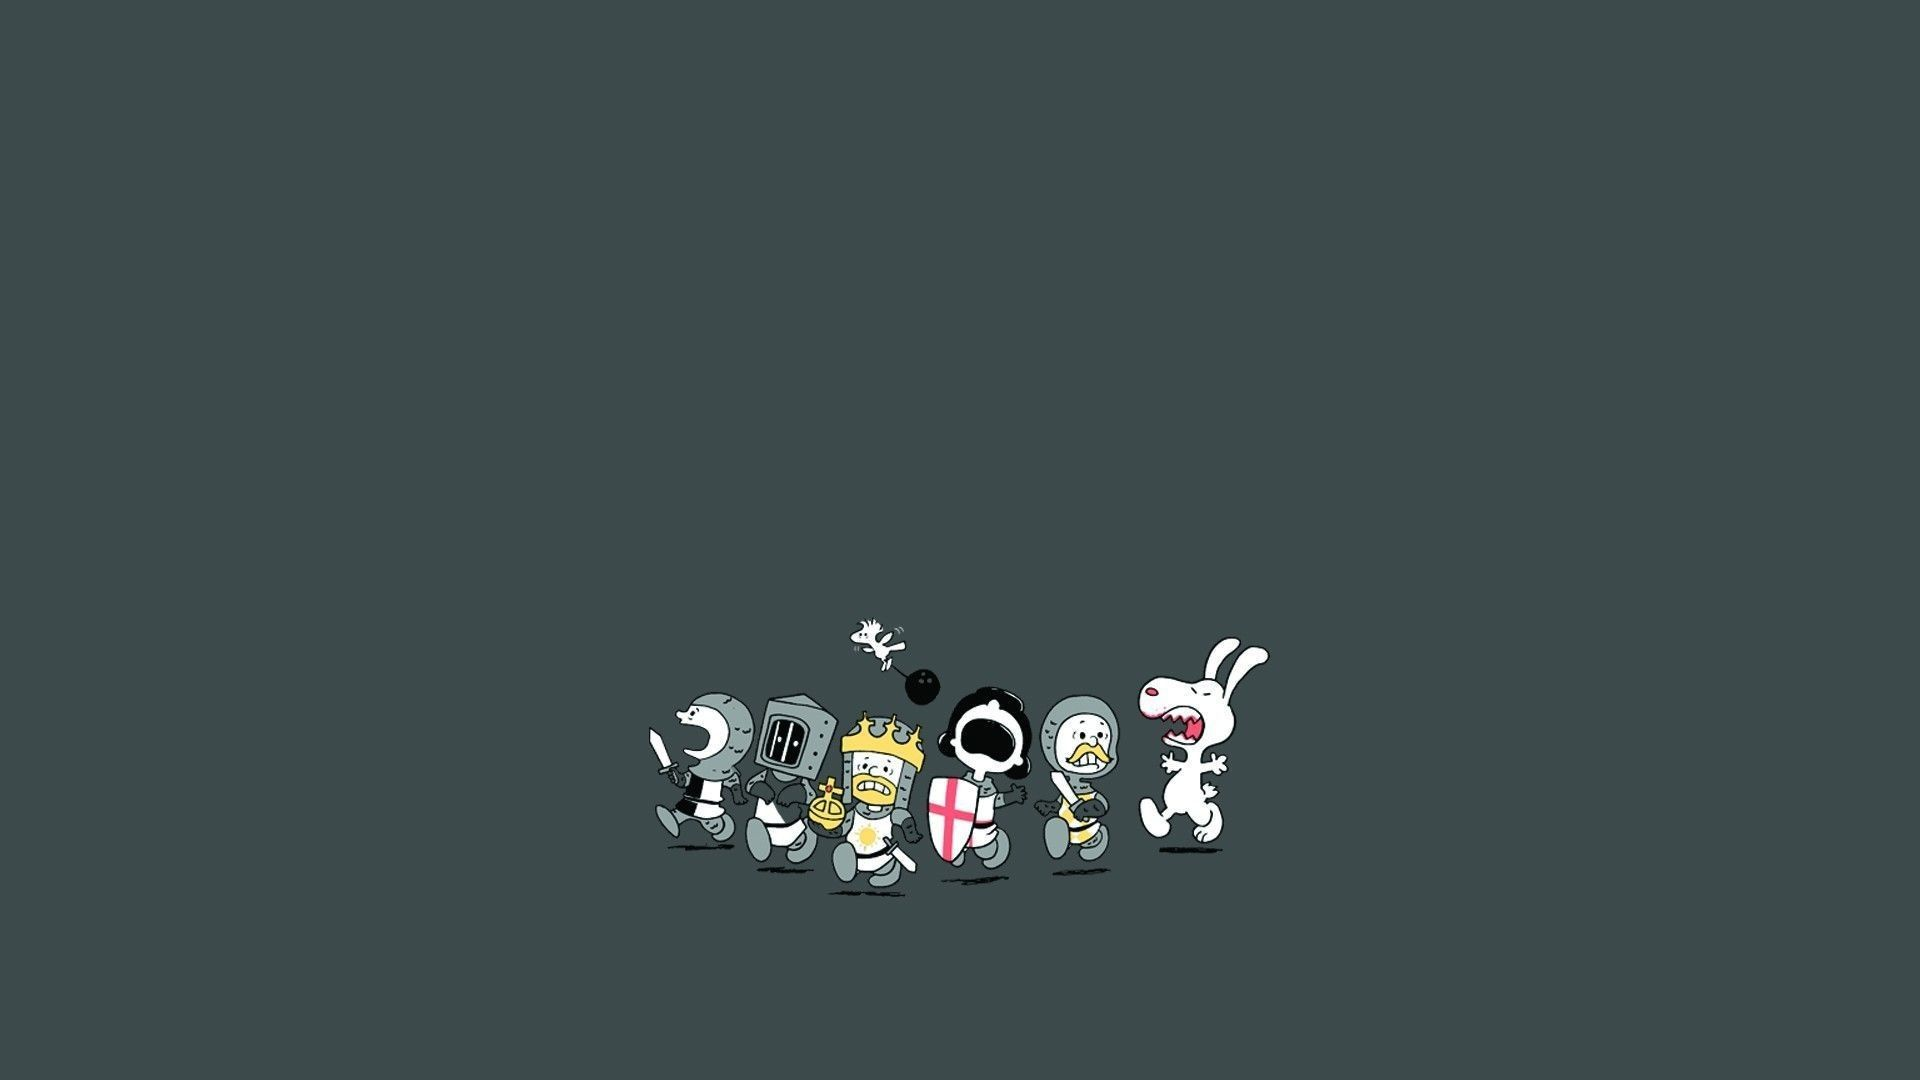 Snoopy Halloween Computer Wallpapers Top Free Snoopy Halloween Computer Backgrounds Wallpaperaccess